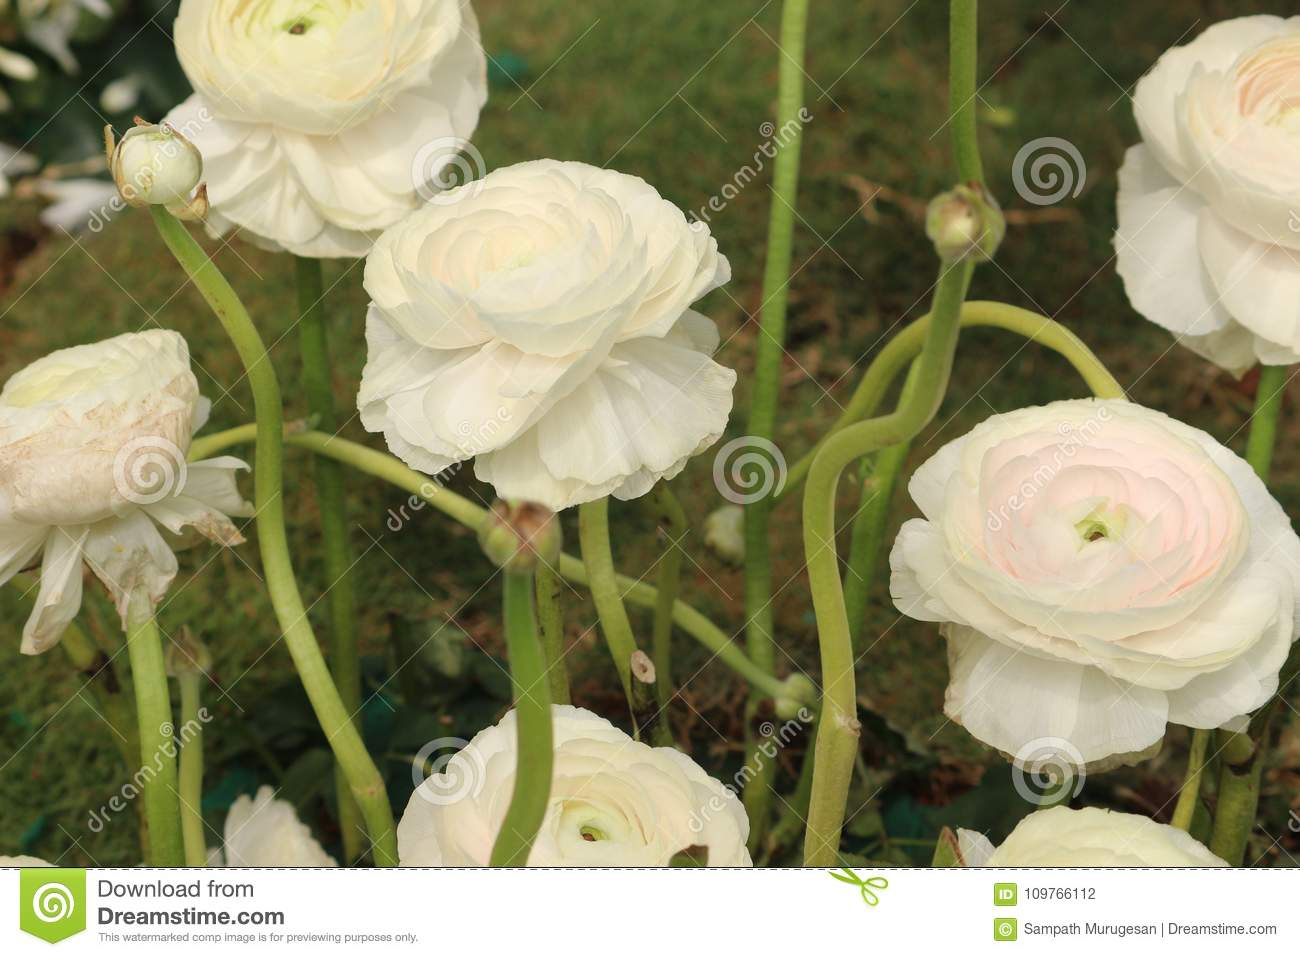 Ranunculus asiaticus white flowers with tightly clustered petals download ranunculus asiaticus white flowers with tightly clustered petals stock photo image of group mightylinksfo